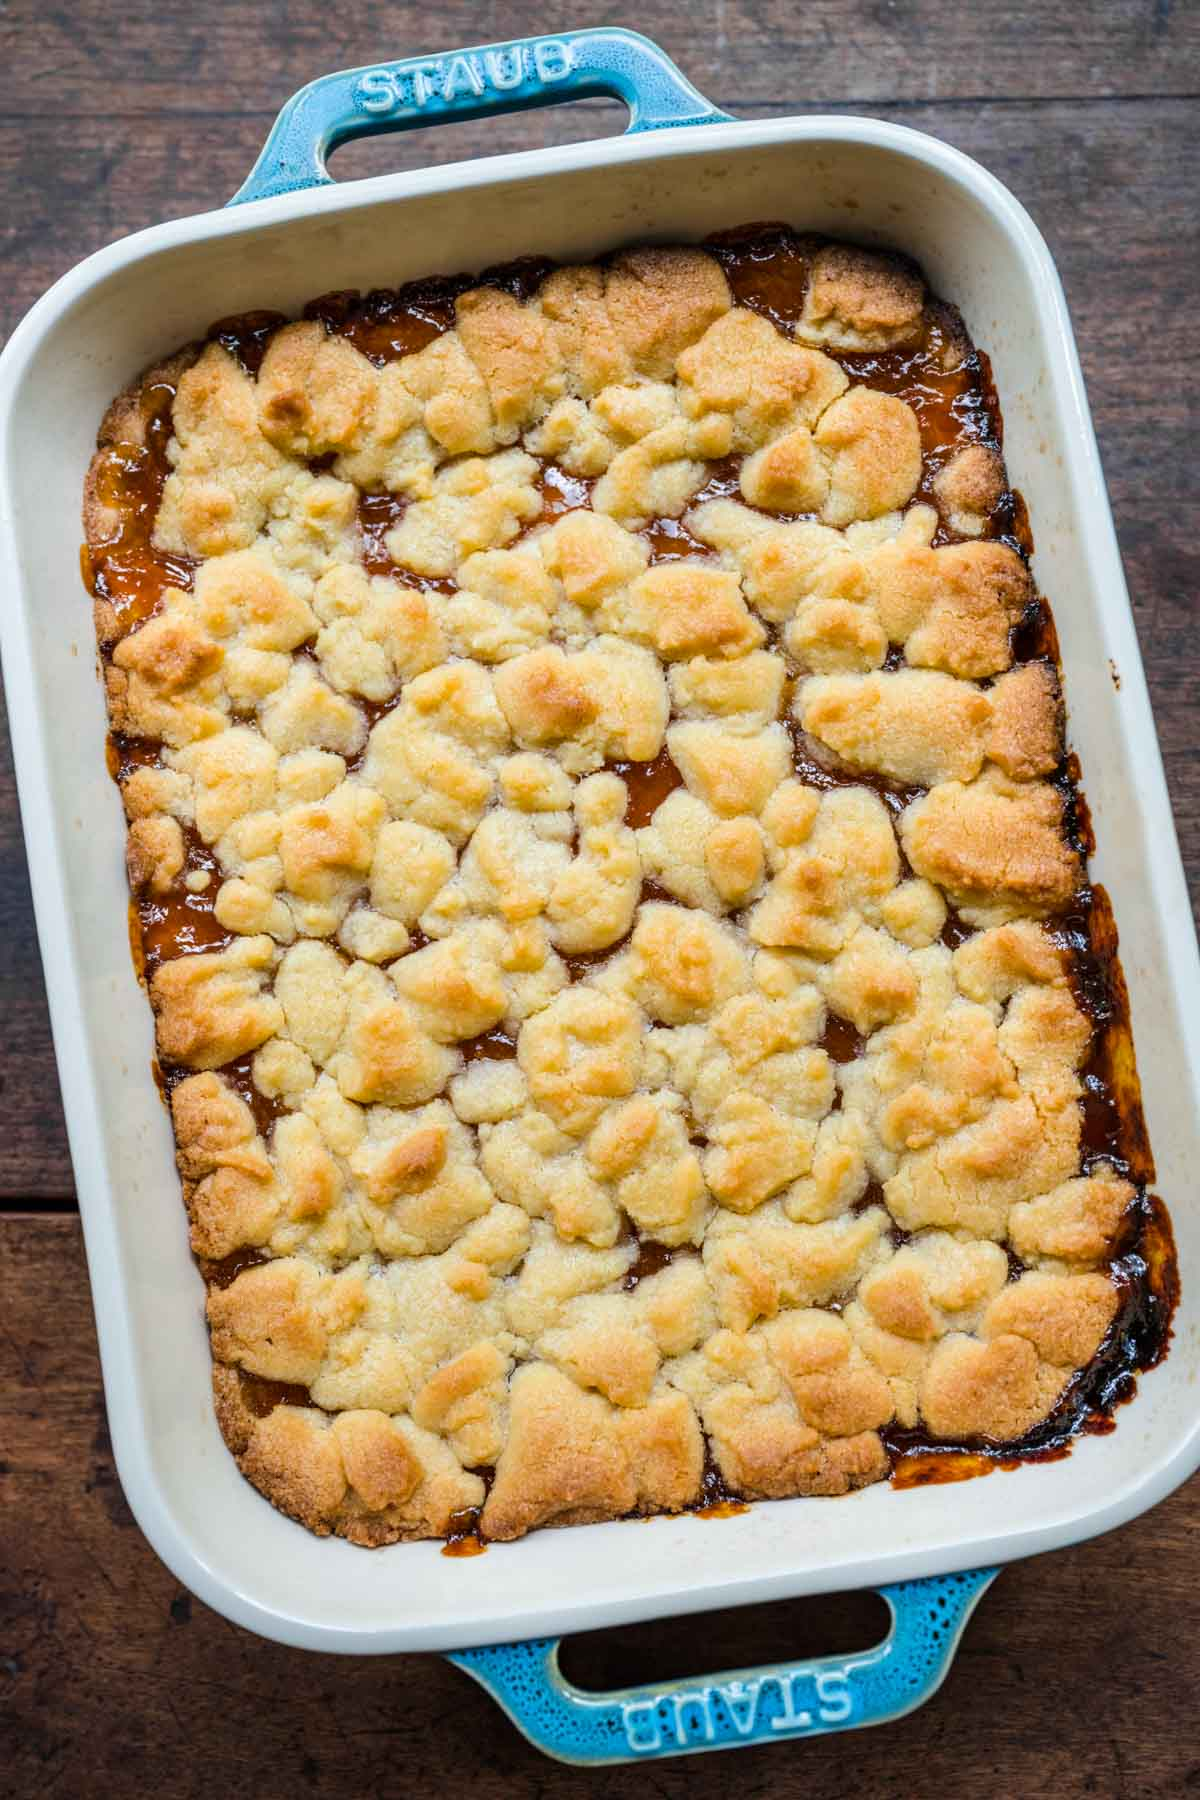 Apricot Shortbread Bars after baking in baking dish